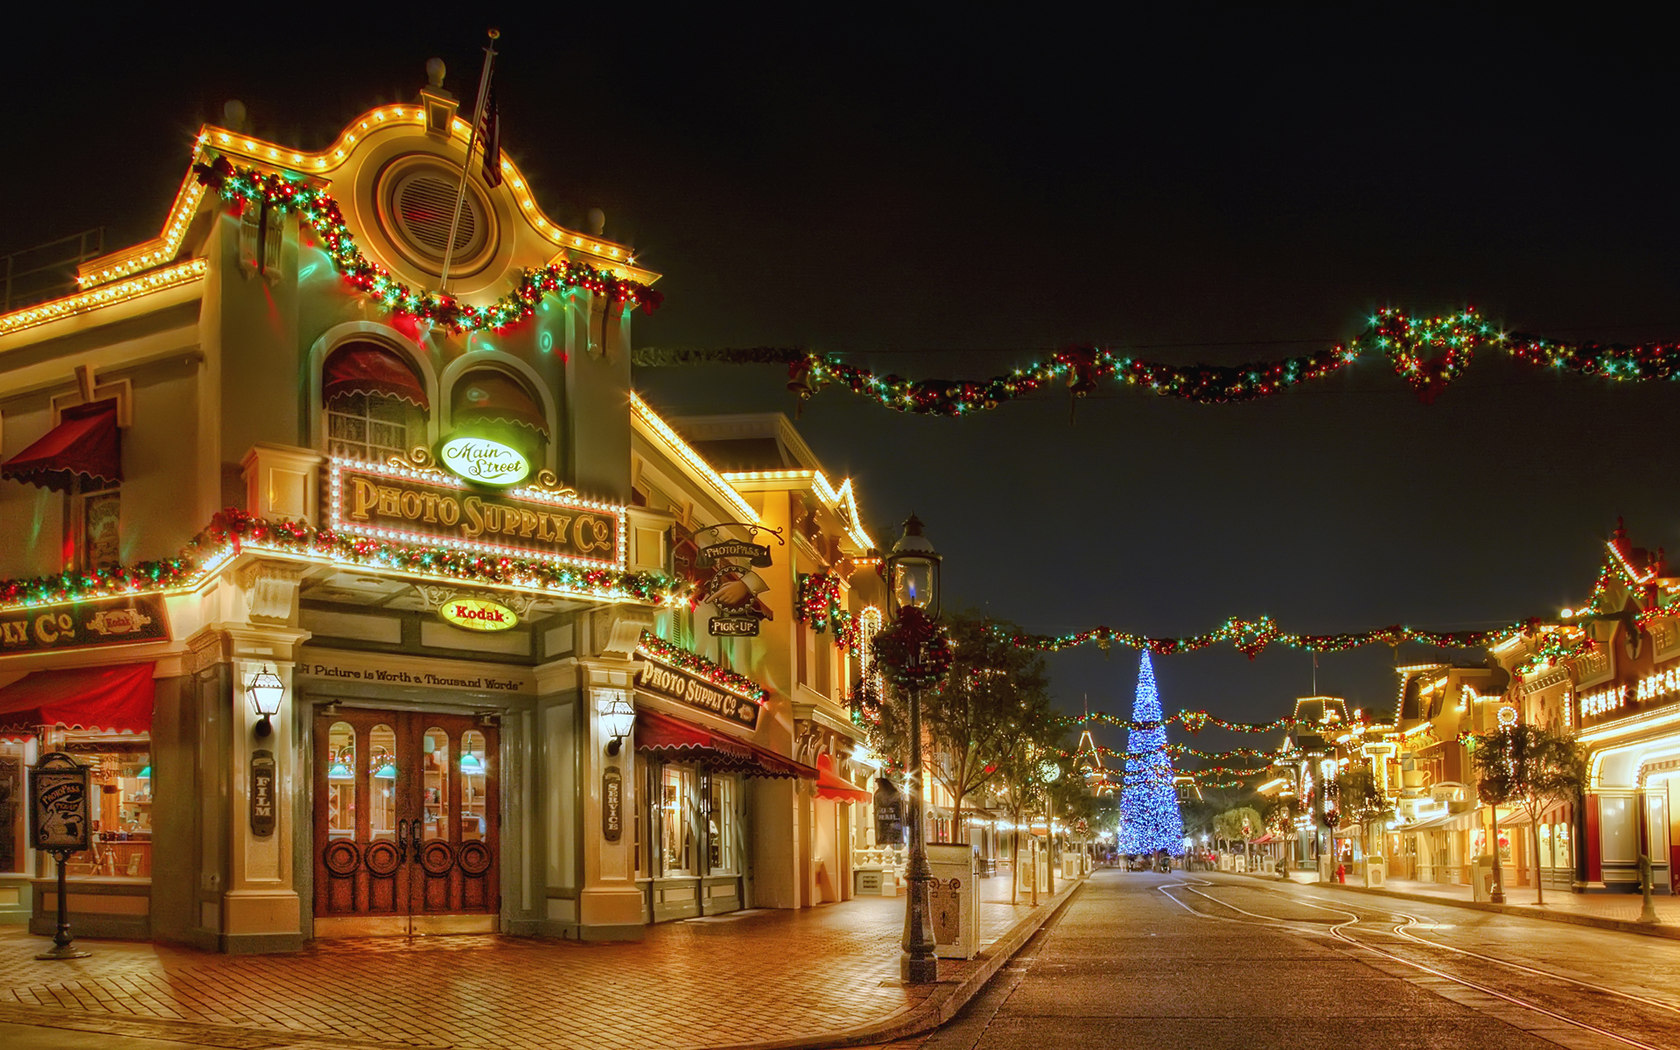 jnrm images disneyland main street at christmas time hd wallpaper and background photos - Disneyland Christmas Time